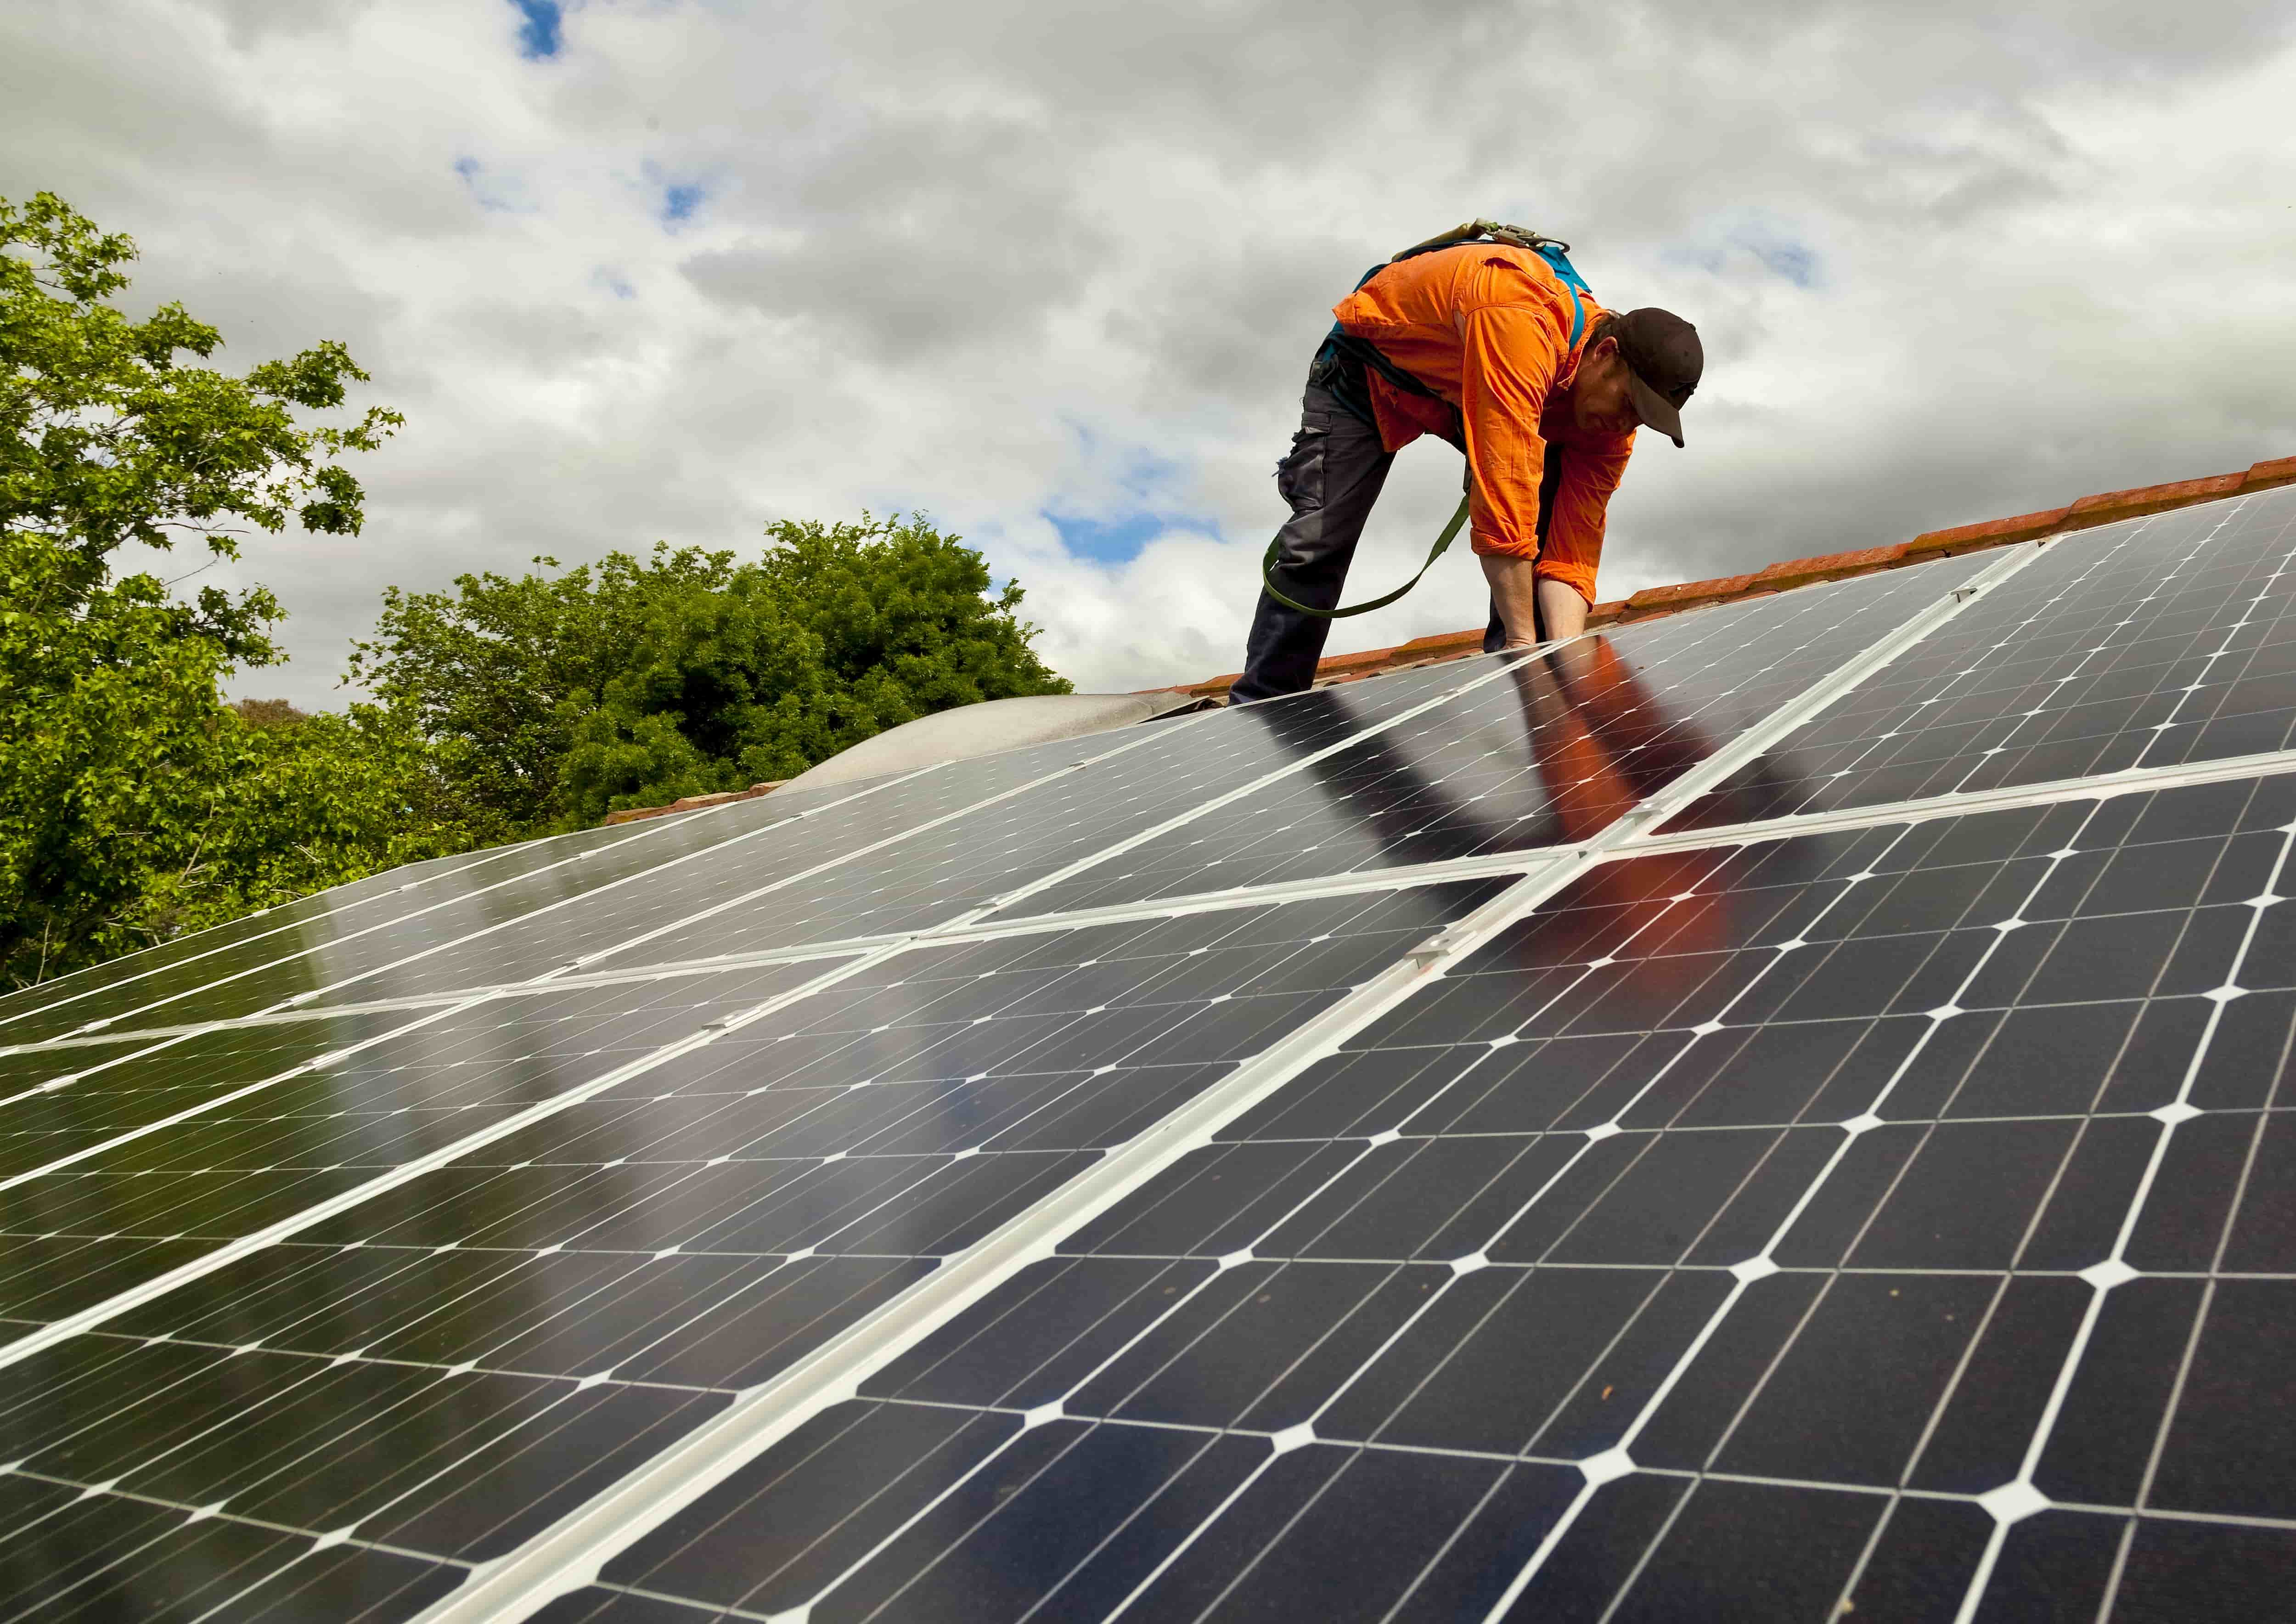 how many hours of sunlight will solar panels receive in Arkansas and Missouri?